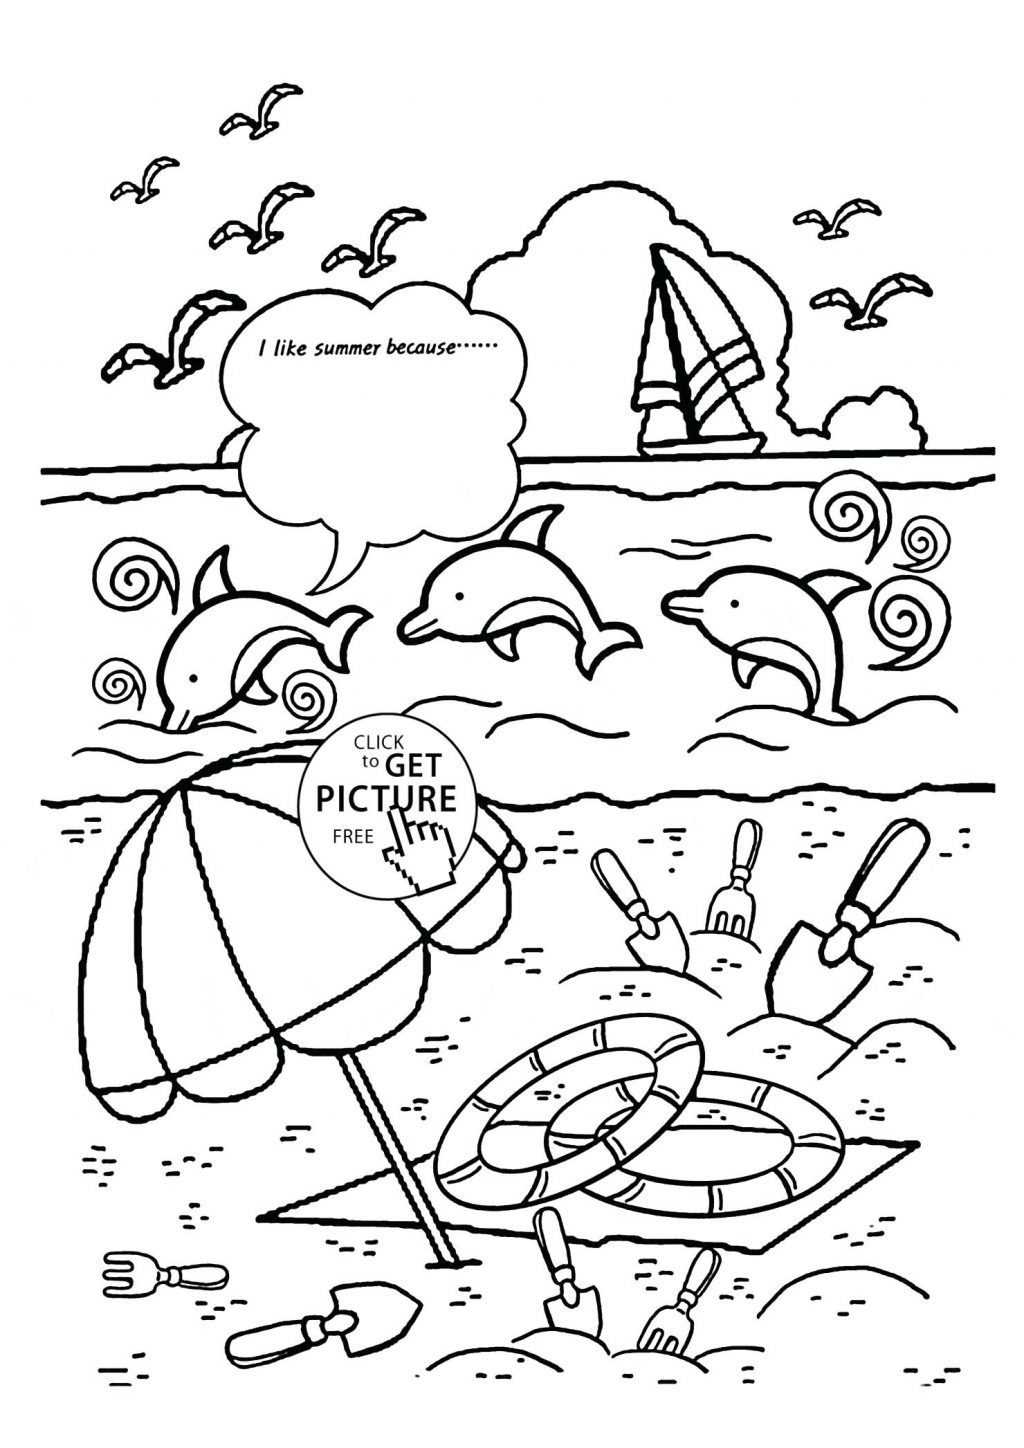 Coloring Pages ~ Free Beach Coloring Pages Incredible Picture - Free Printable Beach Coloring Pages